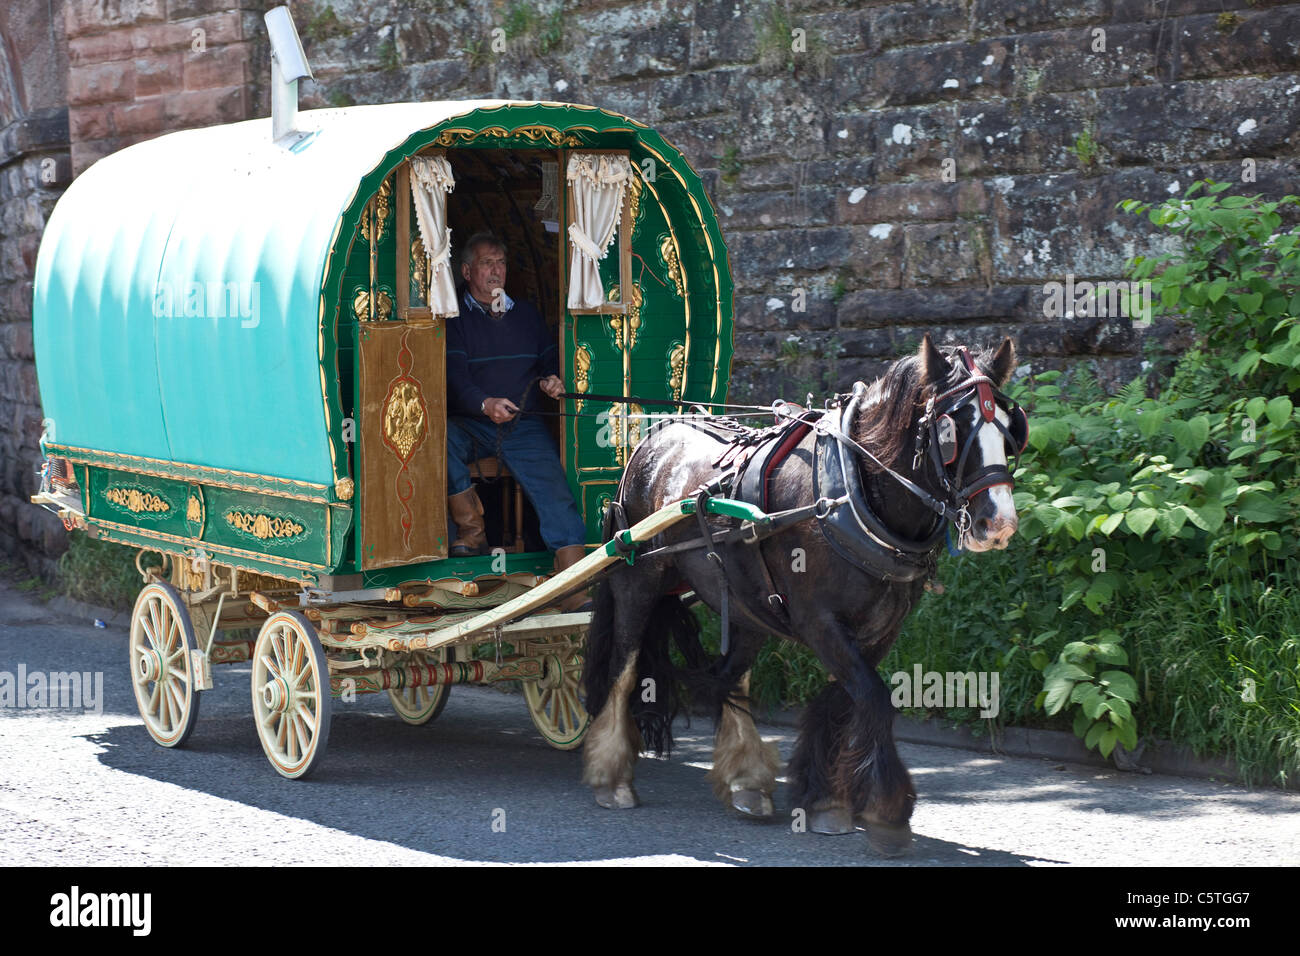 Horse drawn Gypsy Caravan at the Annual Horse Fair in Appleby in Westmoreland. - Stock Image